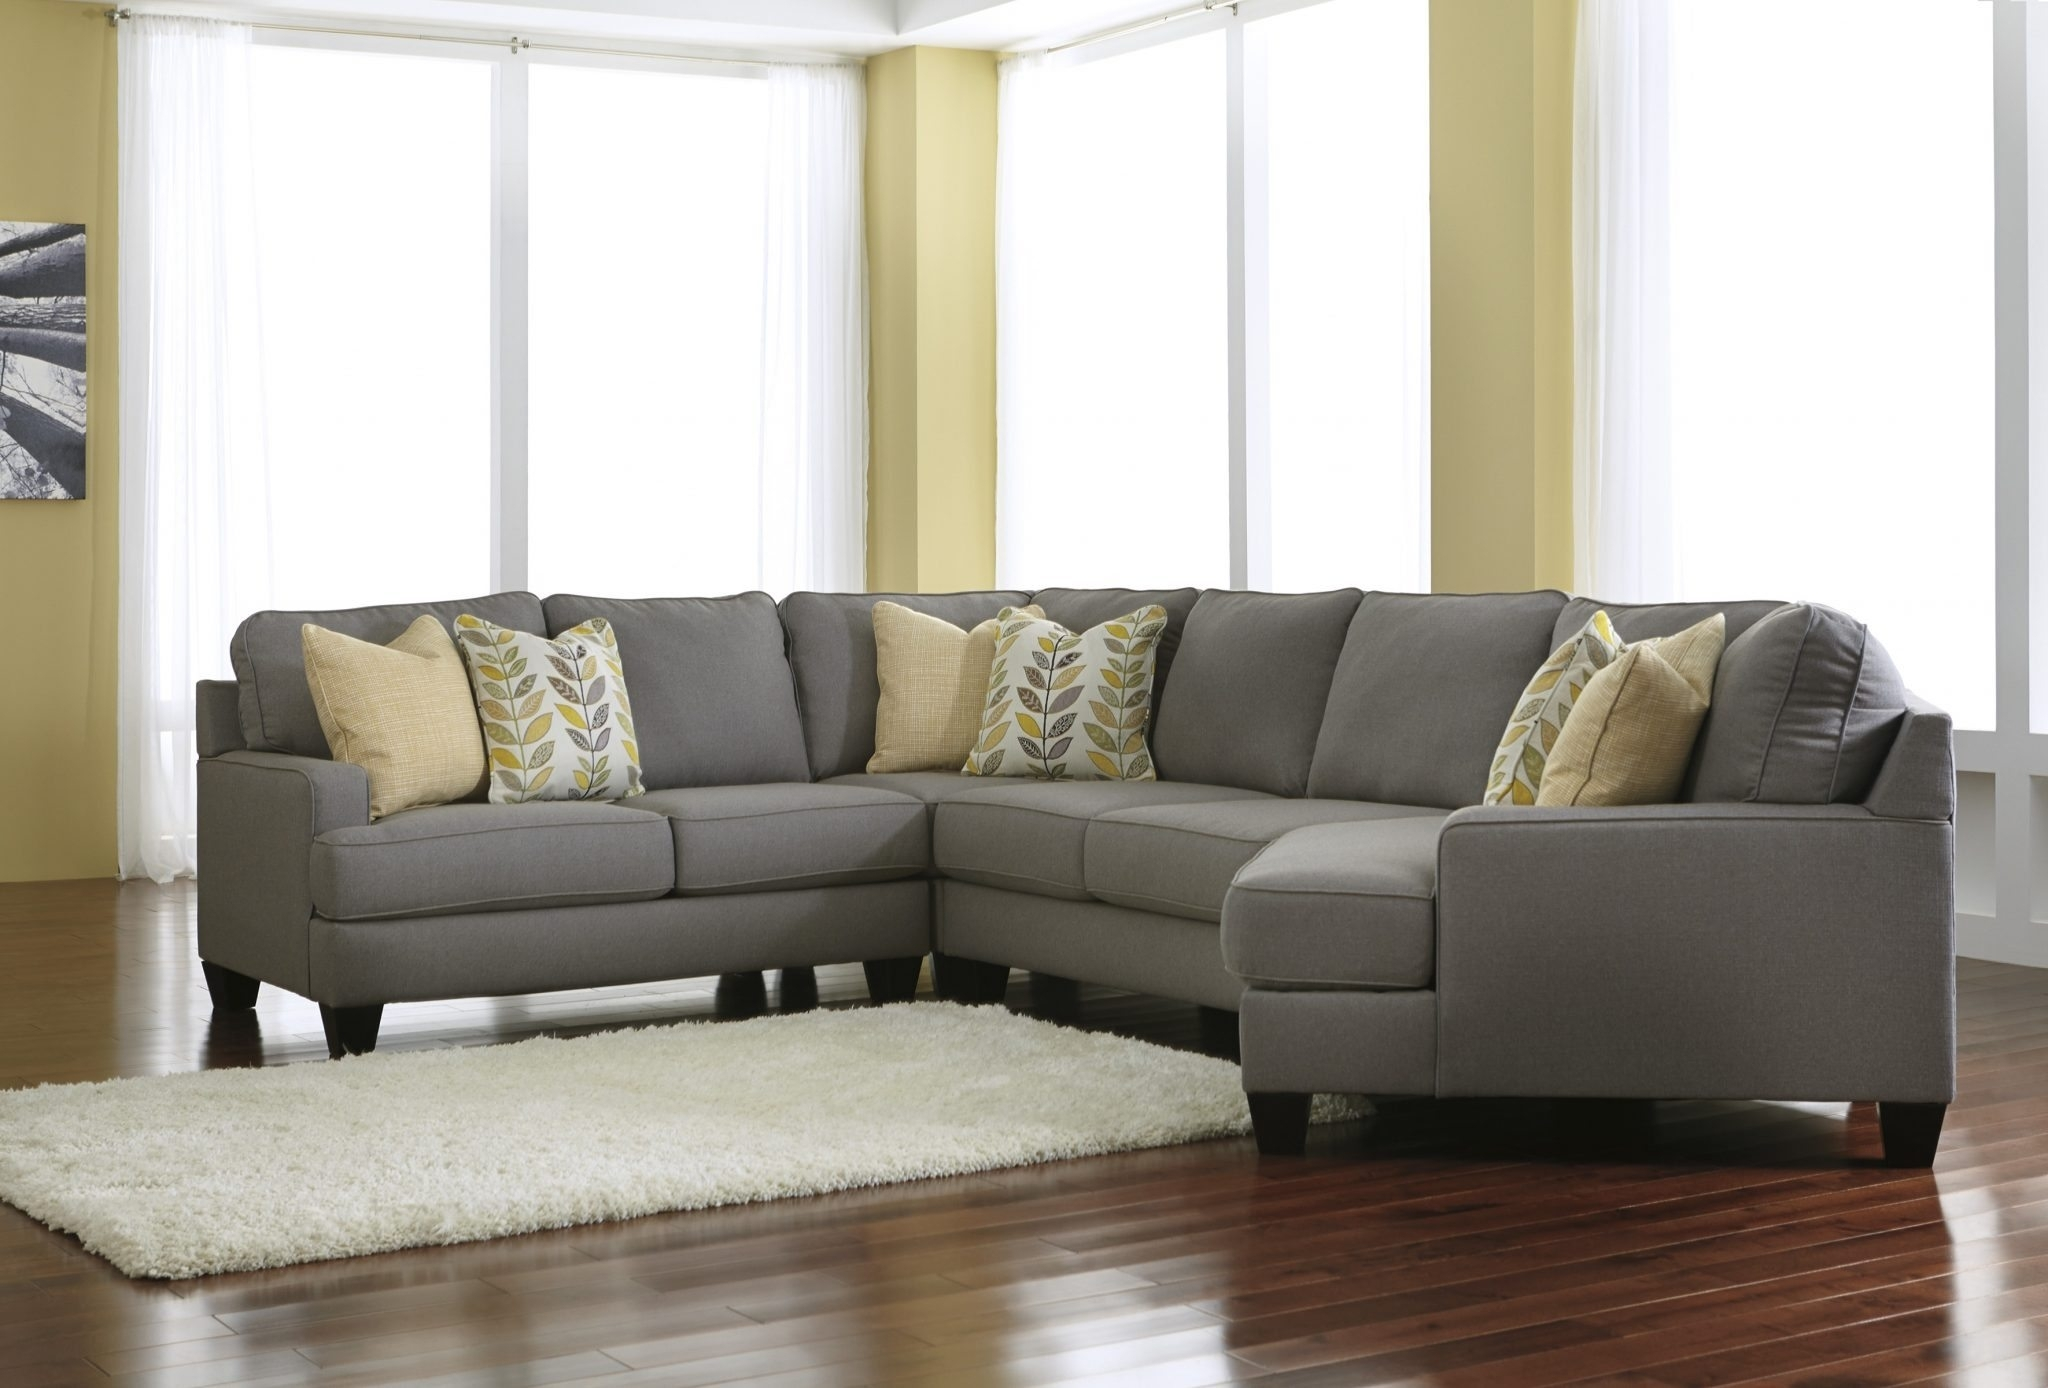 Best Furniture Mentor Oh: Furniture Store - Ashley Furniture Dealer in Ventura County Sectional Sofas (Image 2 of 10)